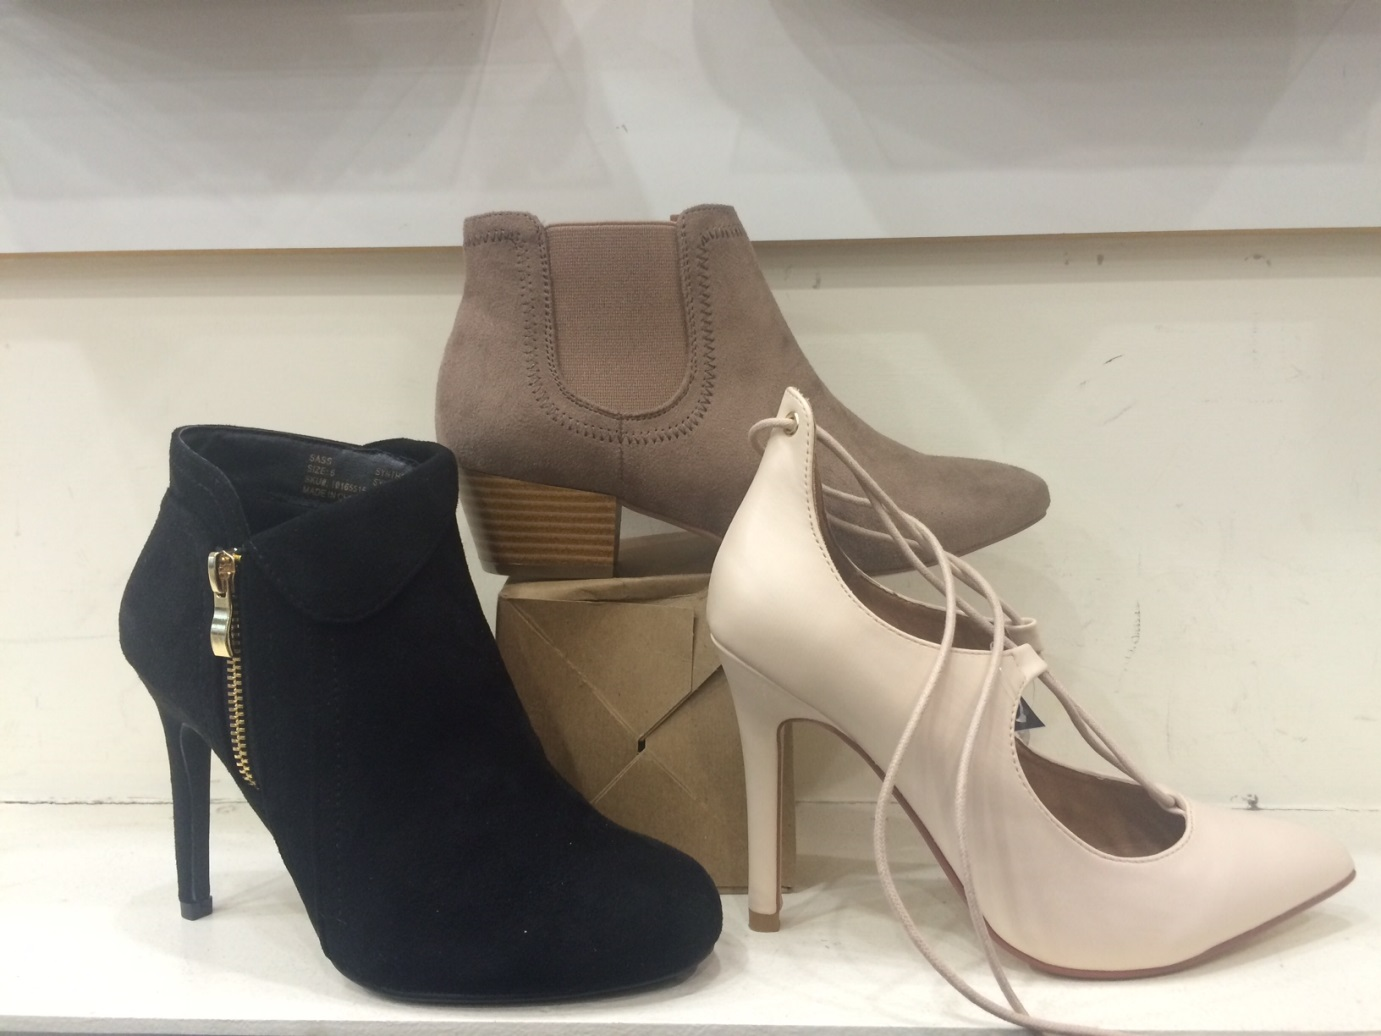 Shop the Look:  Payless Shoes